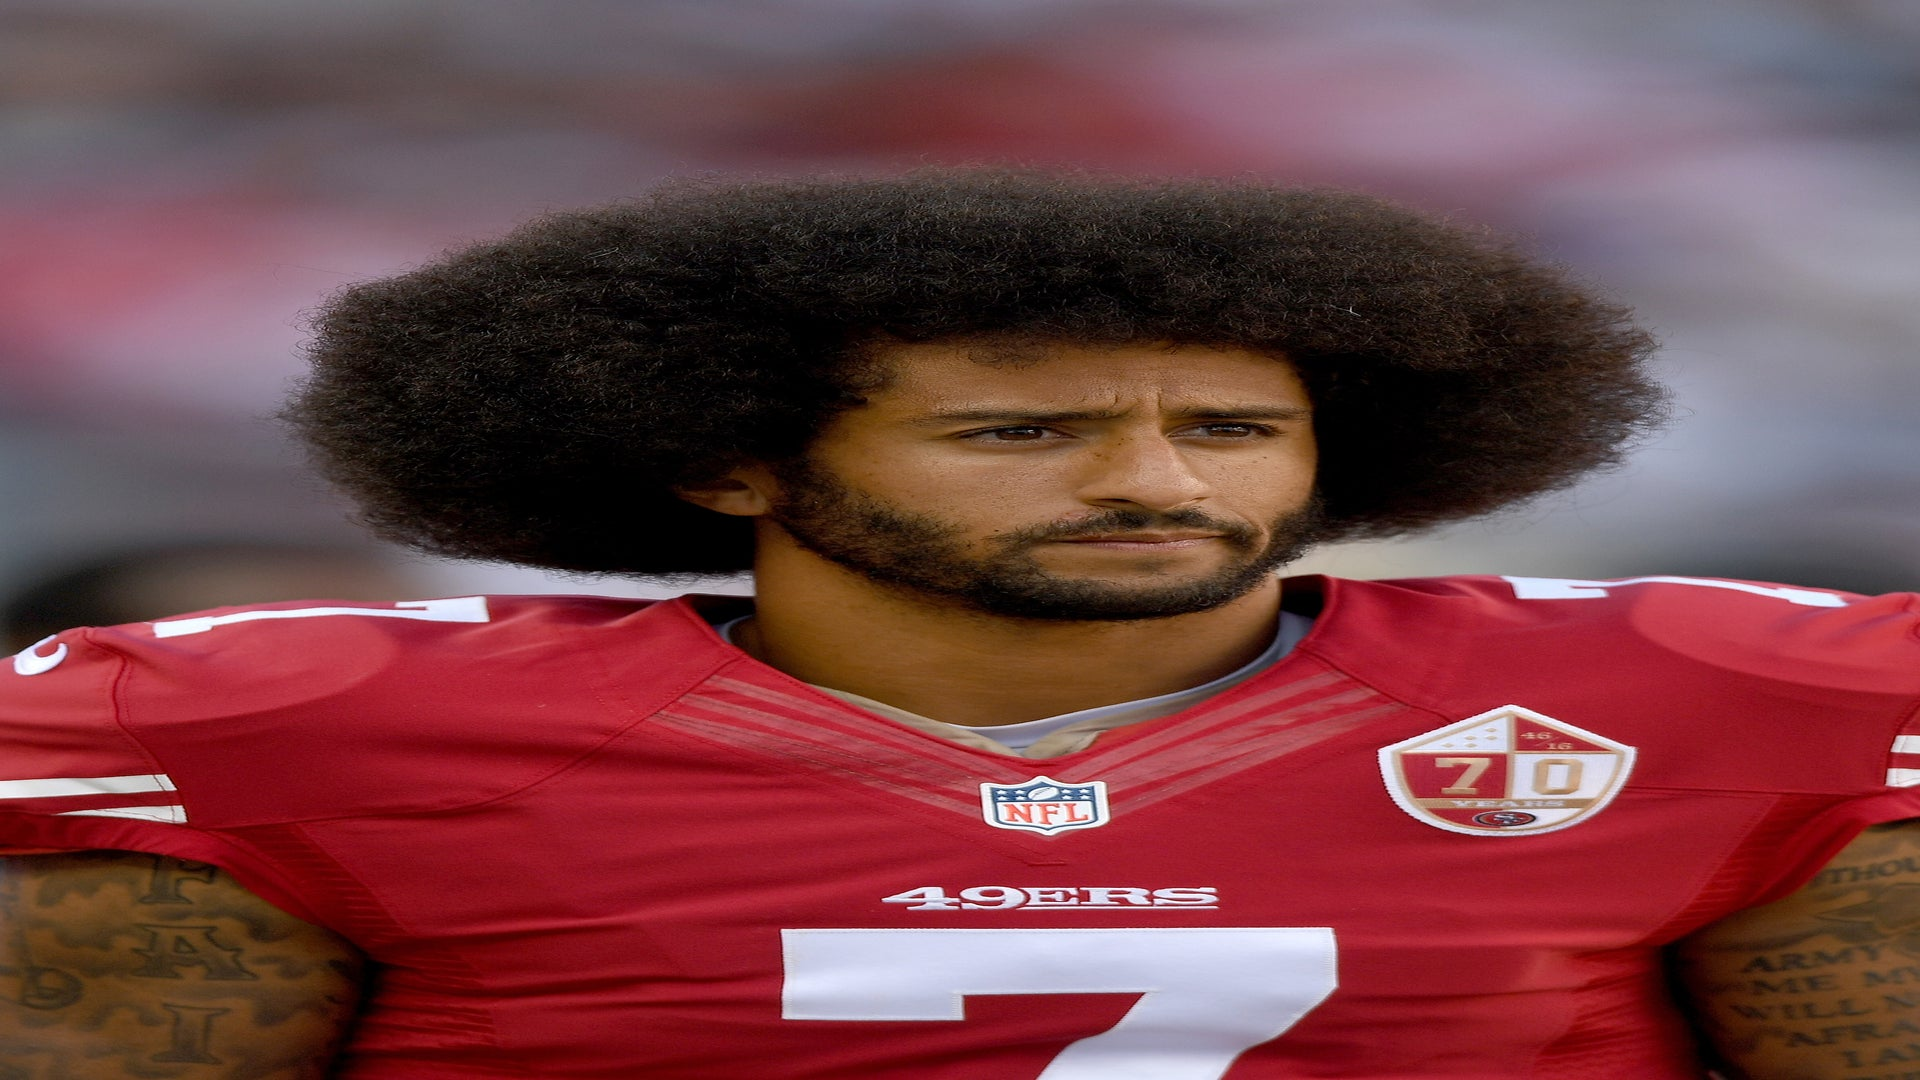 Jason Whitlock Thought It'd Be Funny To Have A White Man Impersonate Colin Kaepernick